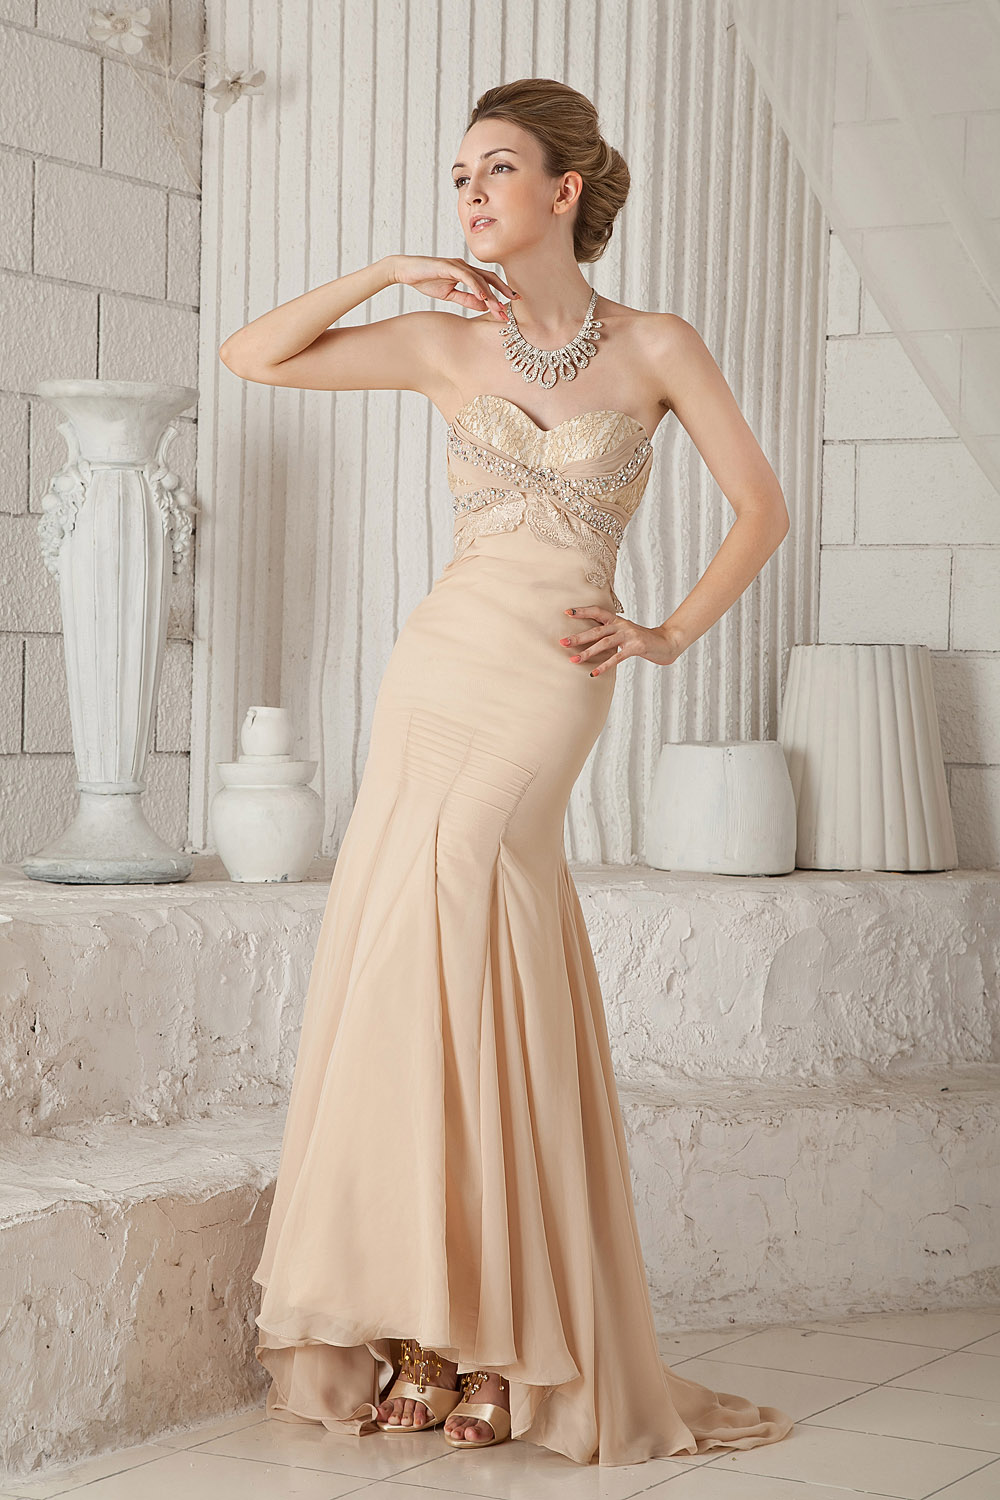 Sheath/Column A-line Sweetheart Sweep/Brush Train Chiffon Prom Dress